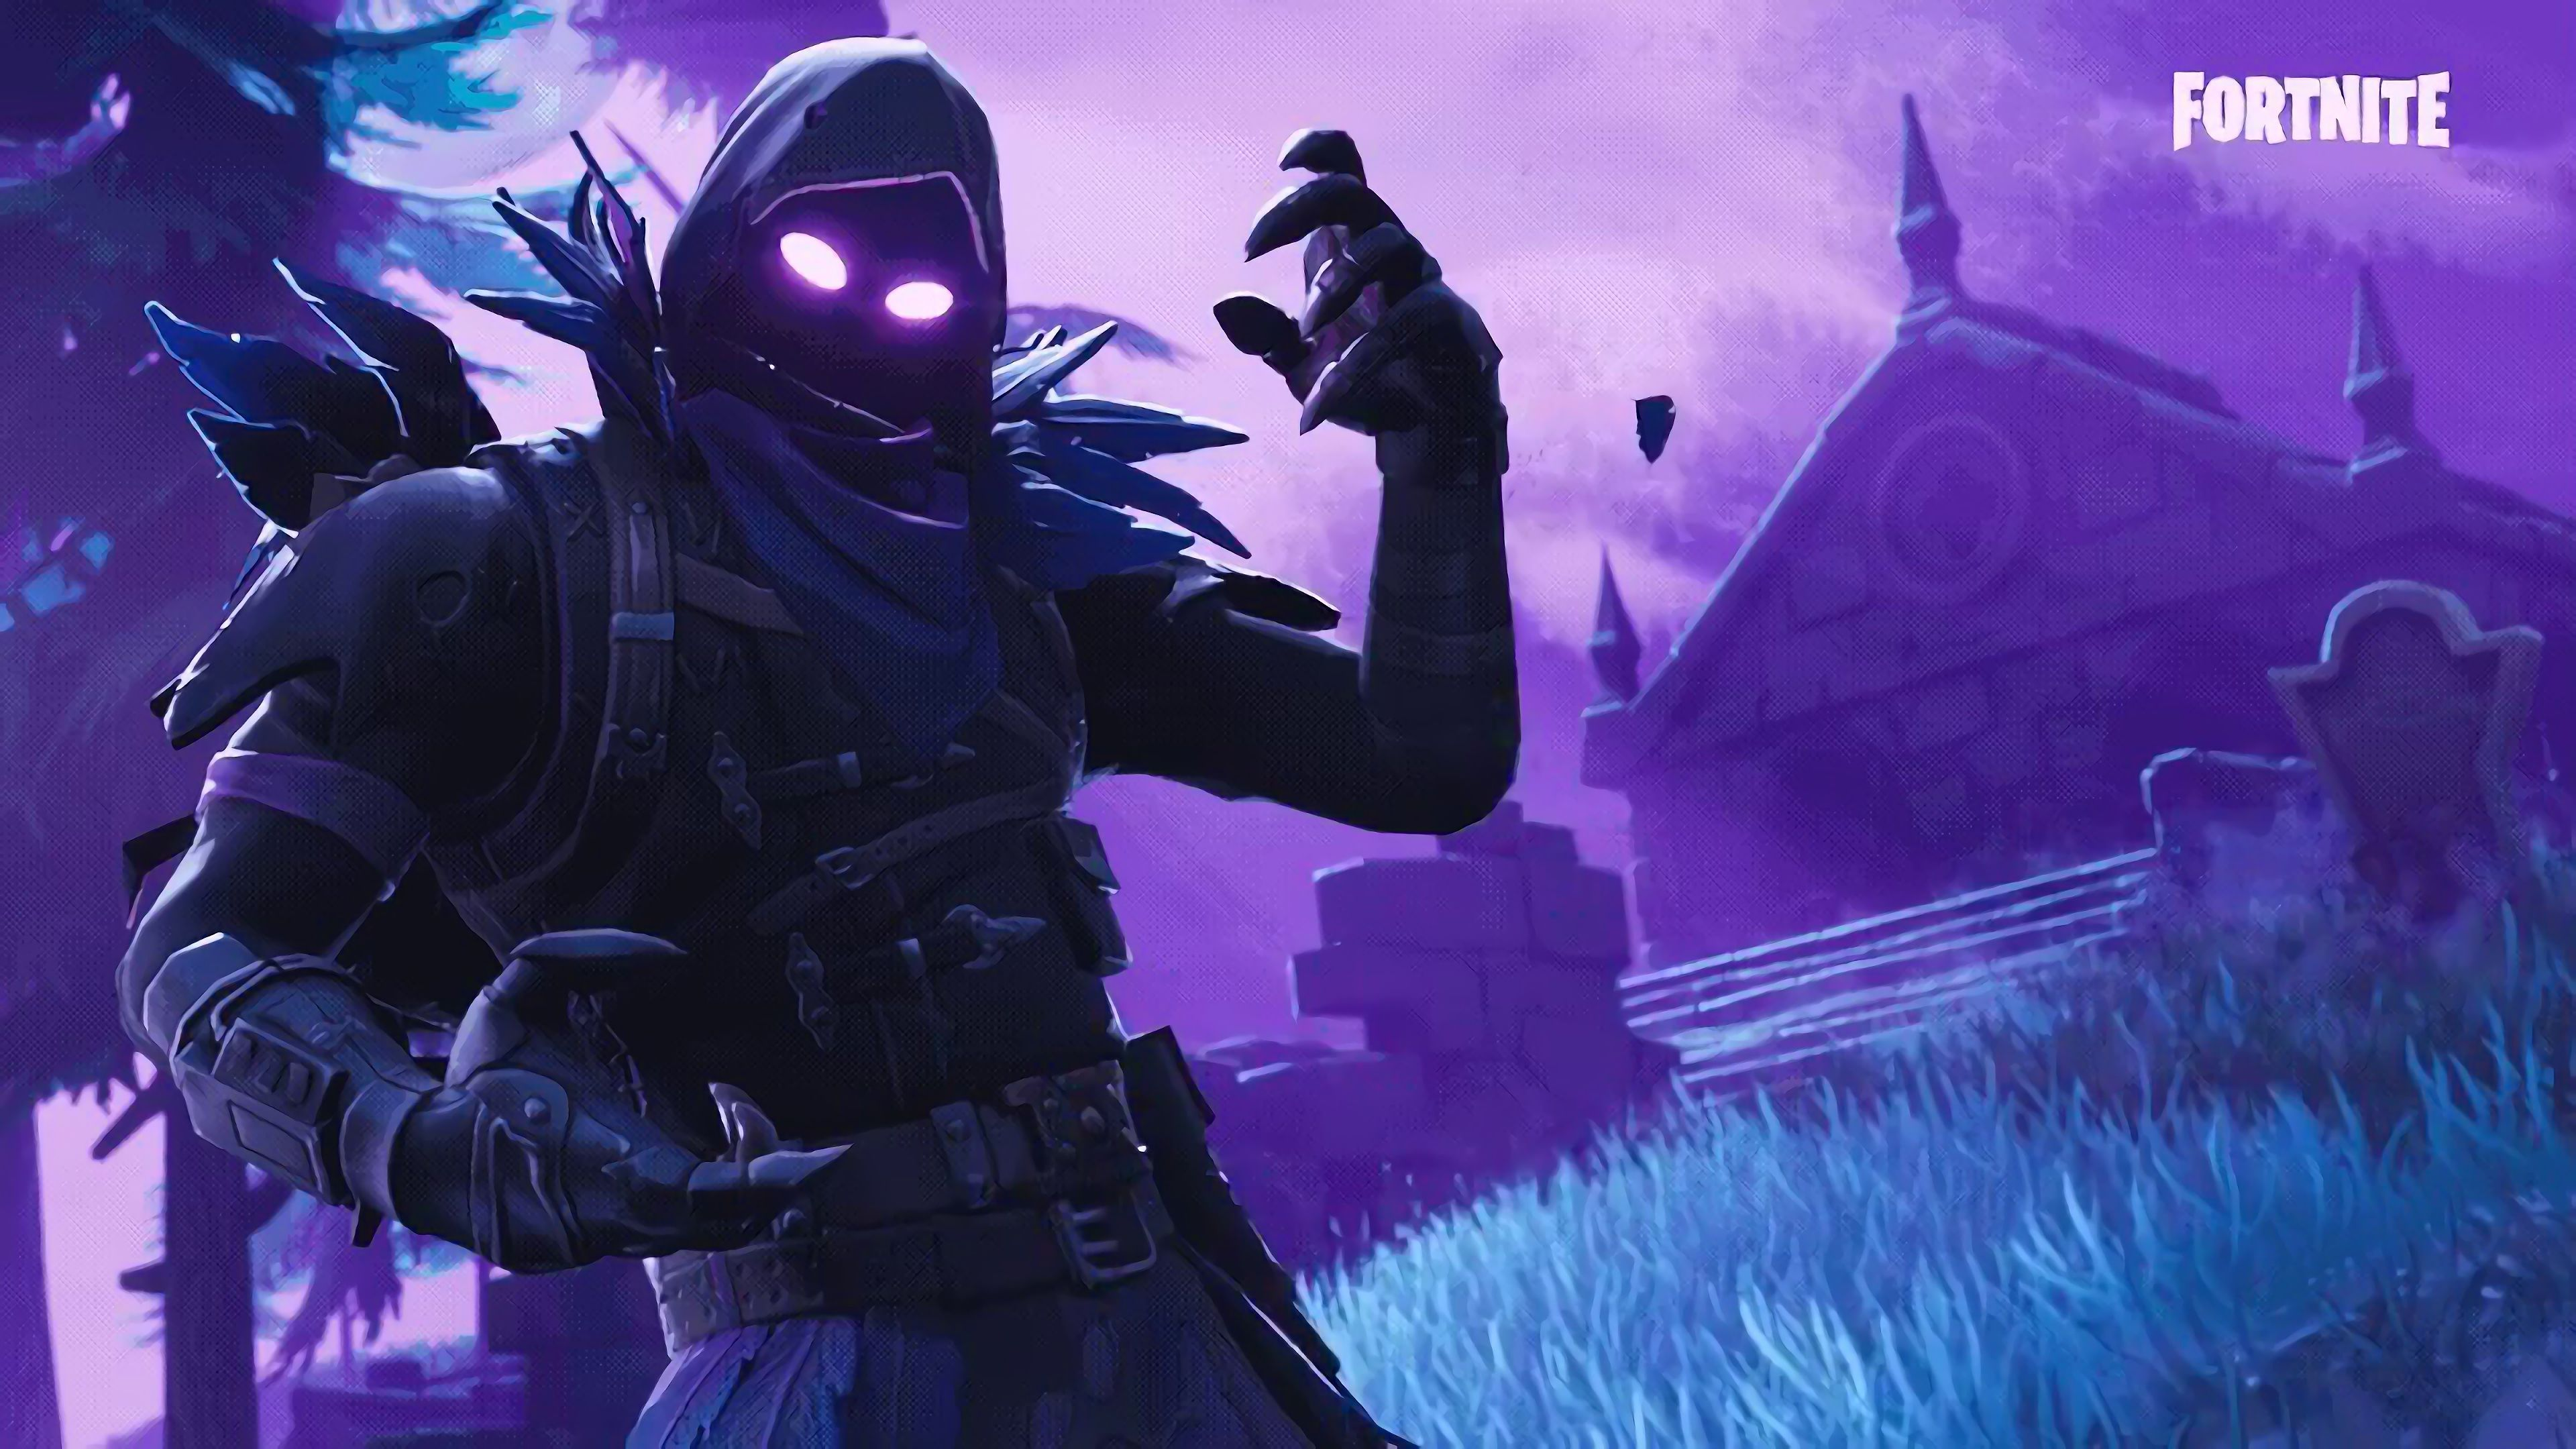 Ravens Fortnite Battle Royal Wallpapers Top Free Ravens Fortnite